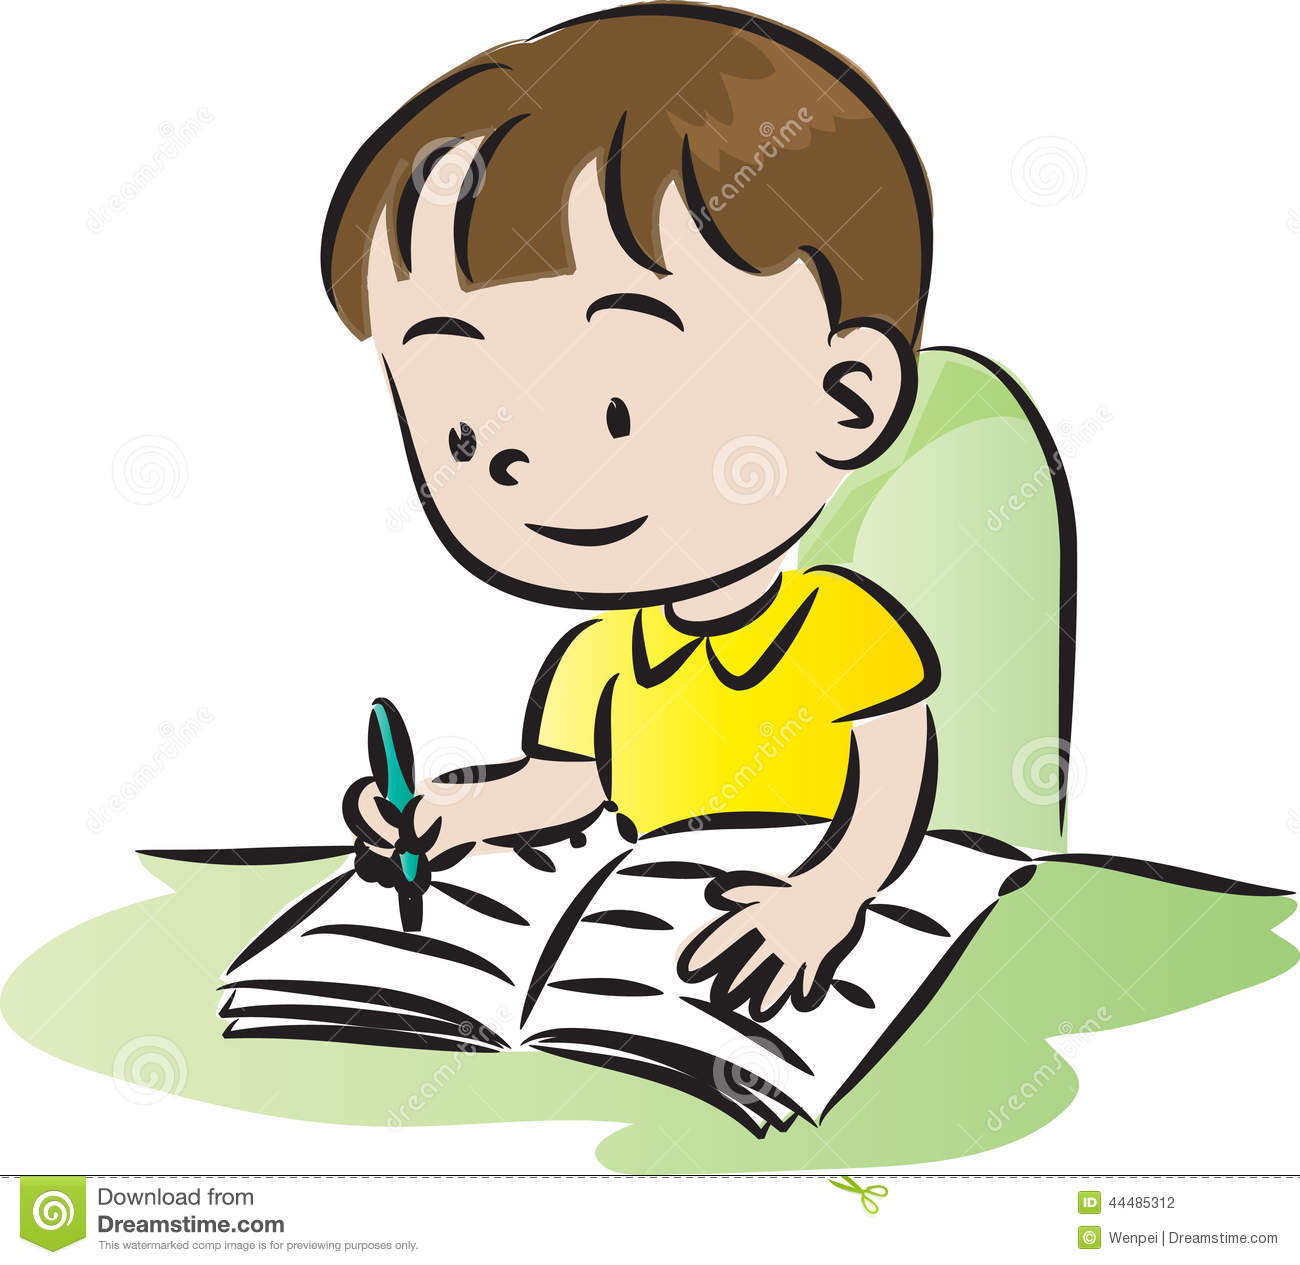 Clipartfox baby homeworkclipart. Boy turning in assignment clipart